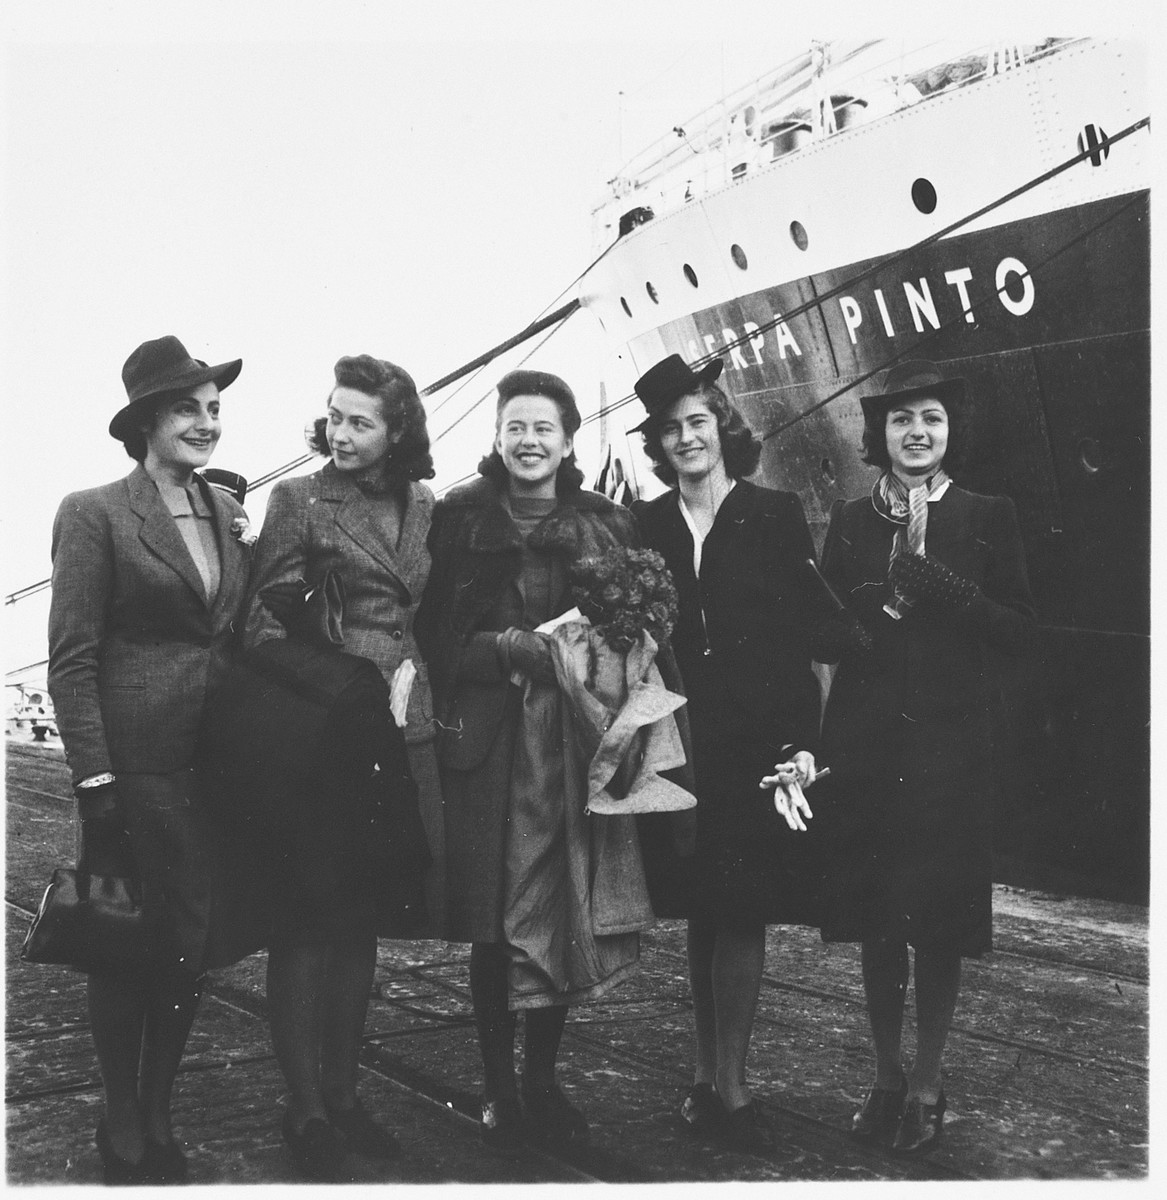 Five young, female Jewish refugees pose on the pier in the port of Lisbon before boarding the SS Serpa Pinto.  Among those pictured is Madeleine Hecht Feher, center holding a bouquet of flowers, surrounded by her co-workers from the American Joint Distribtuion Committee. On the far left is Lolita Goldstein, a JDC employee.